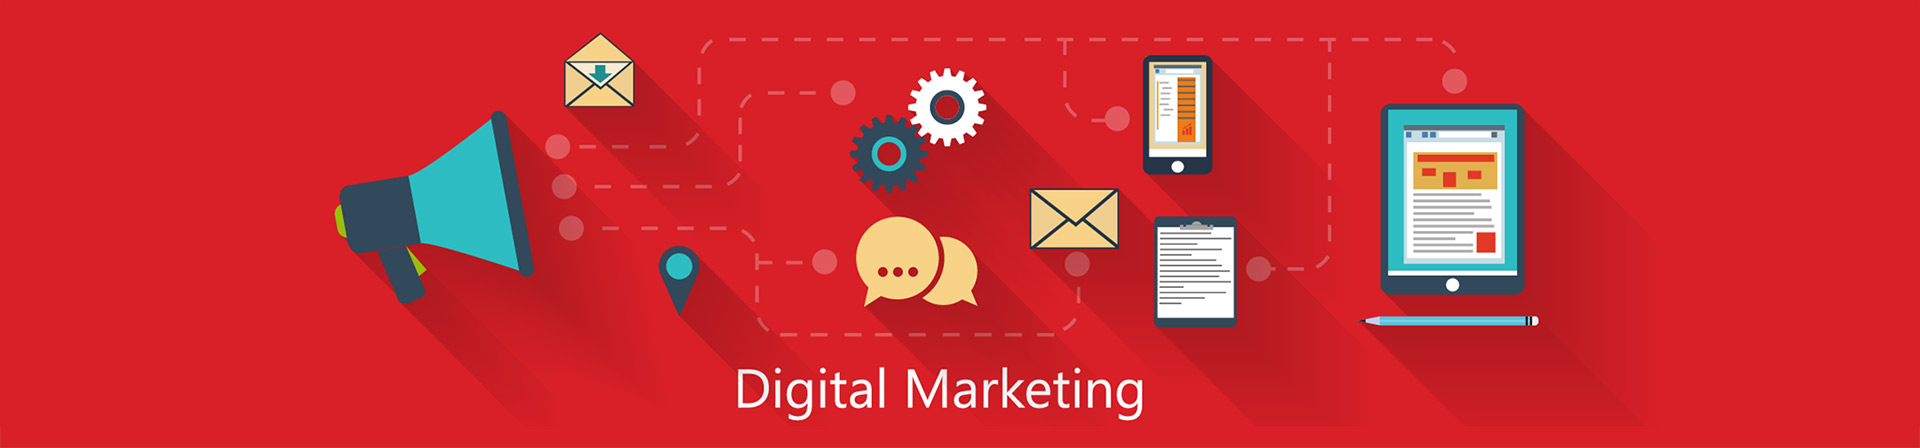 Digital-Marketing1